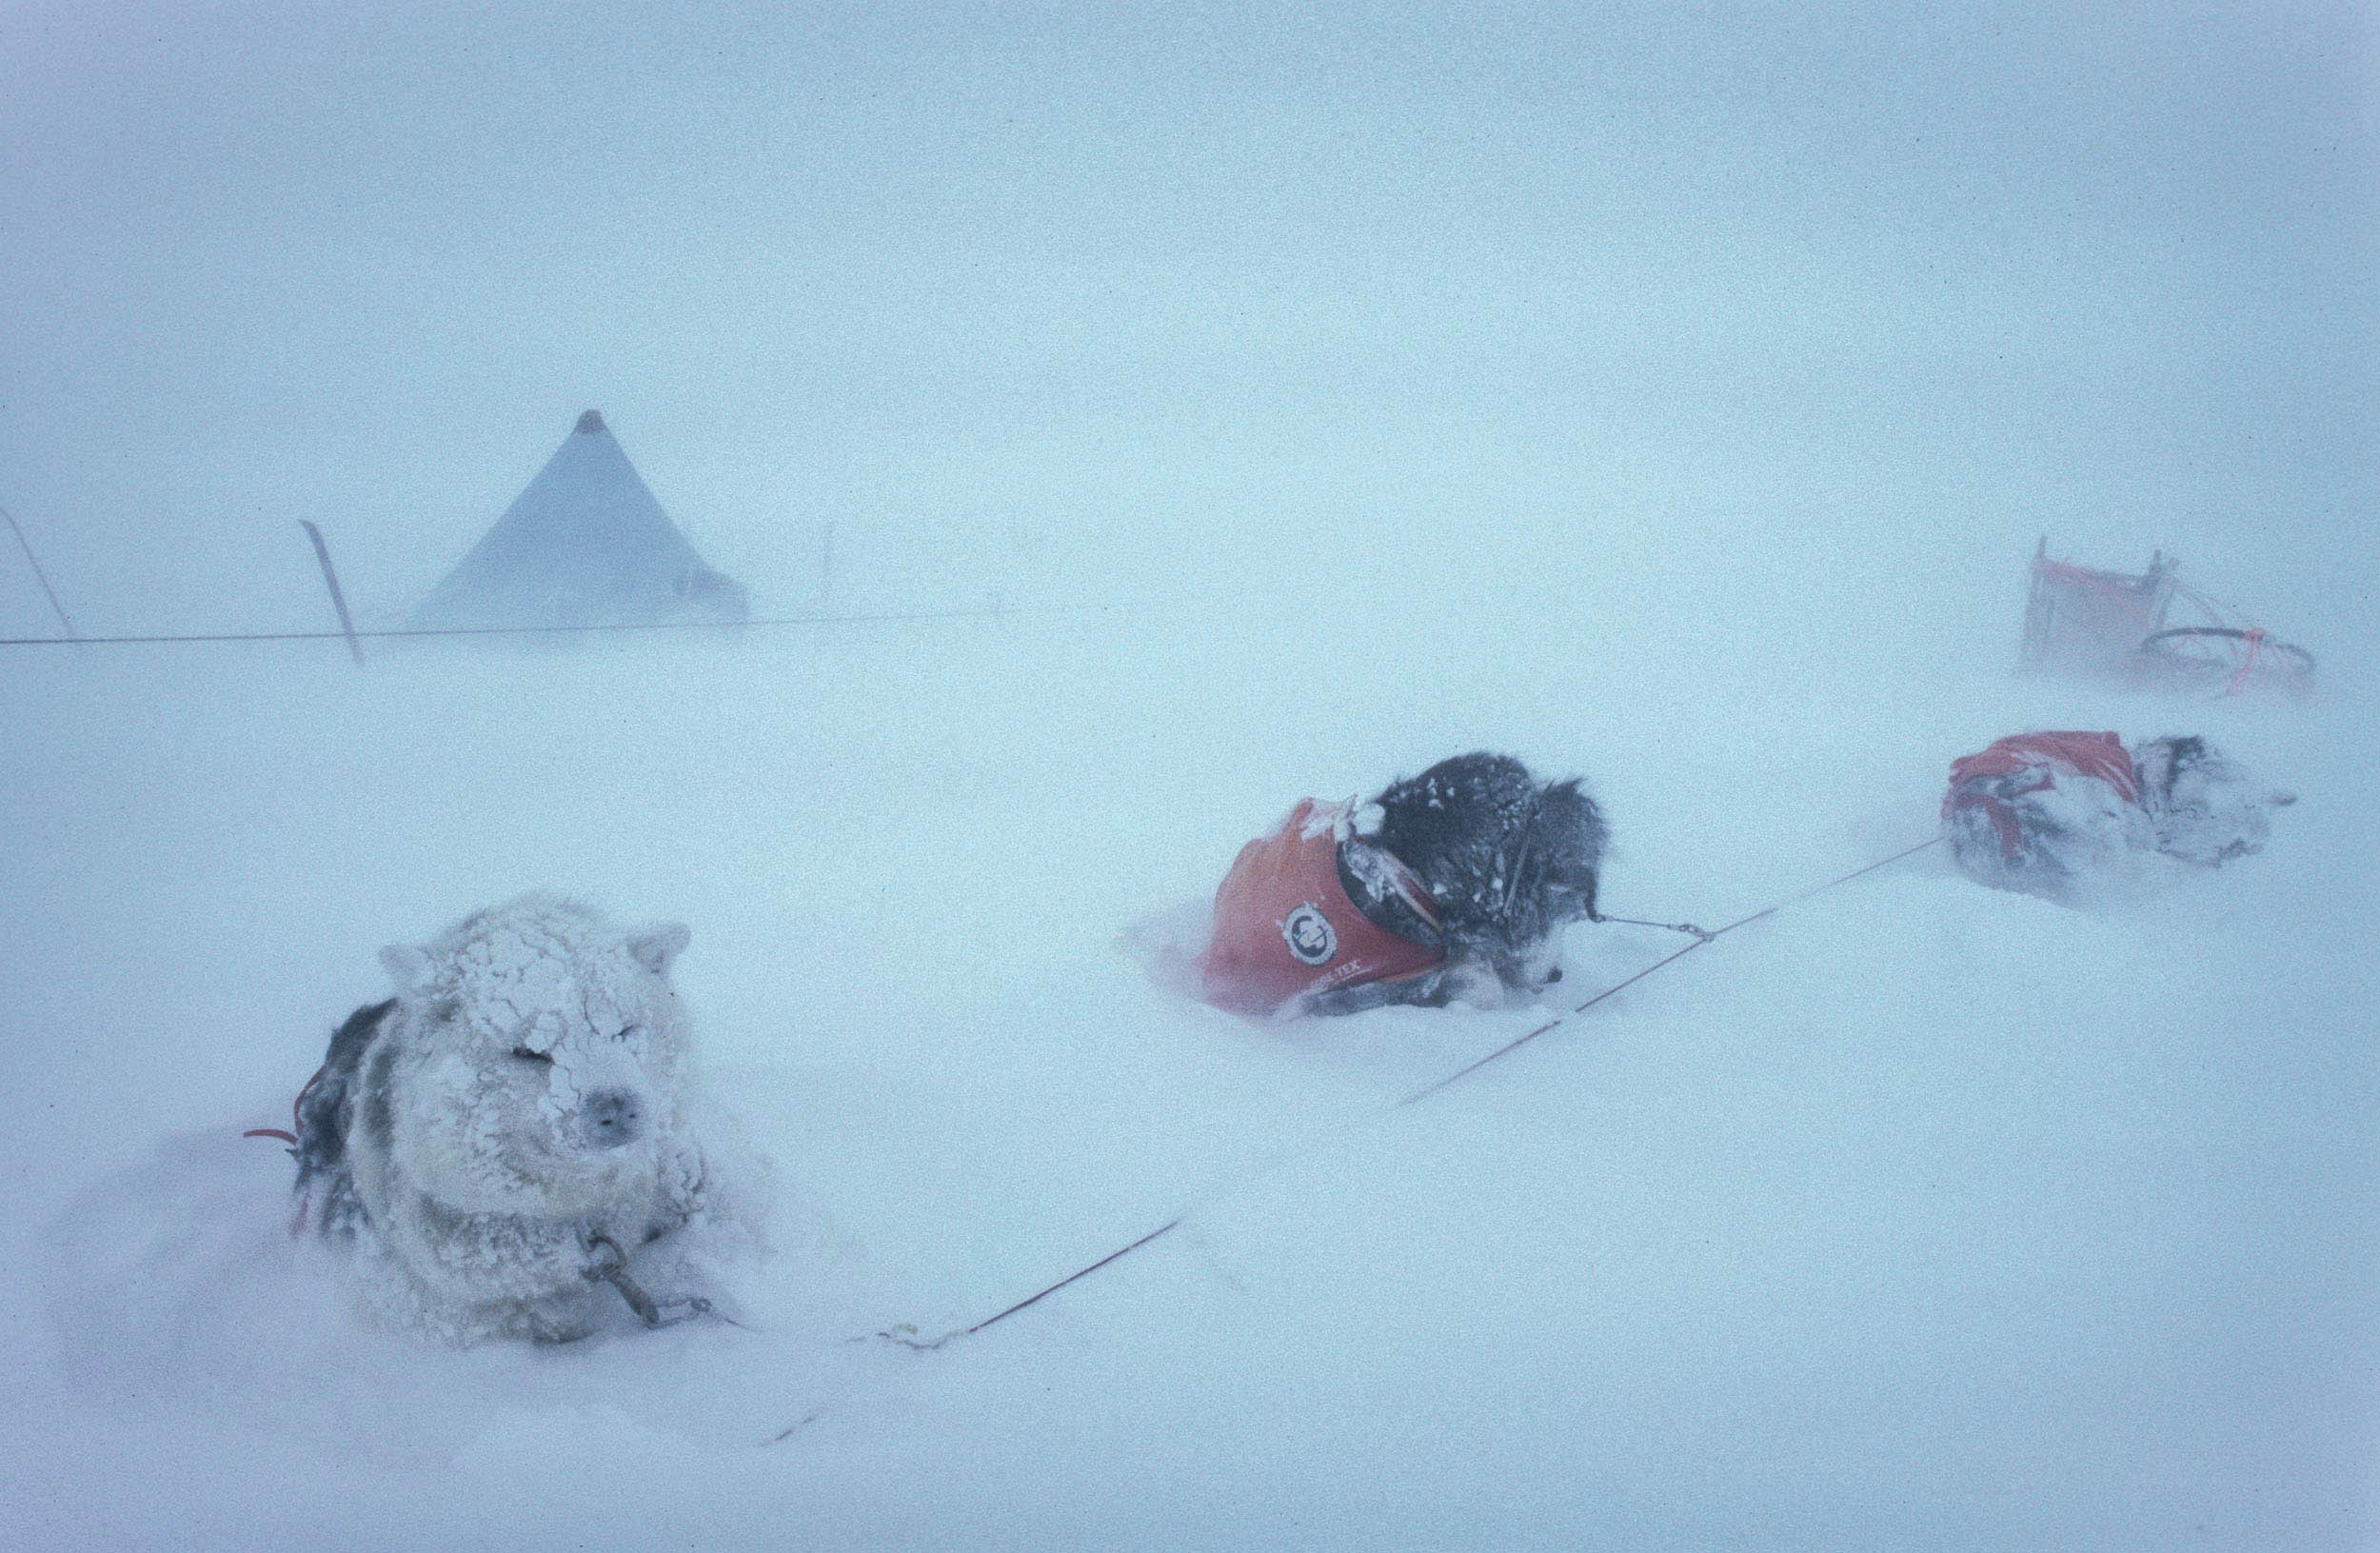 Trans-AntarcticaExpedition-Sled-dogs-in-Gore-Tex-jackets